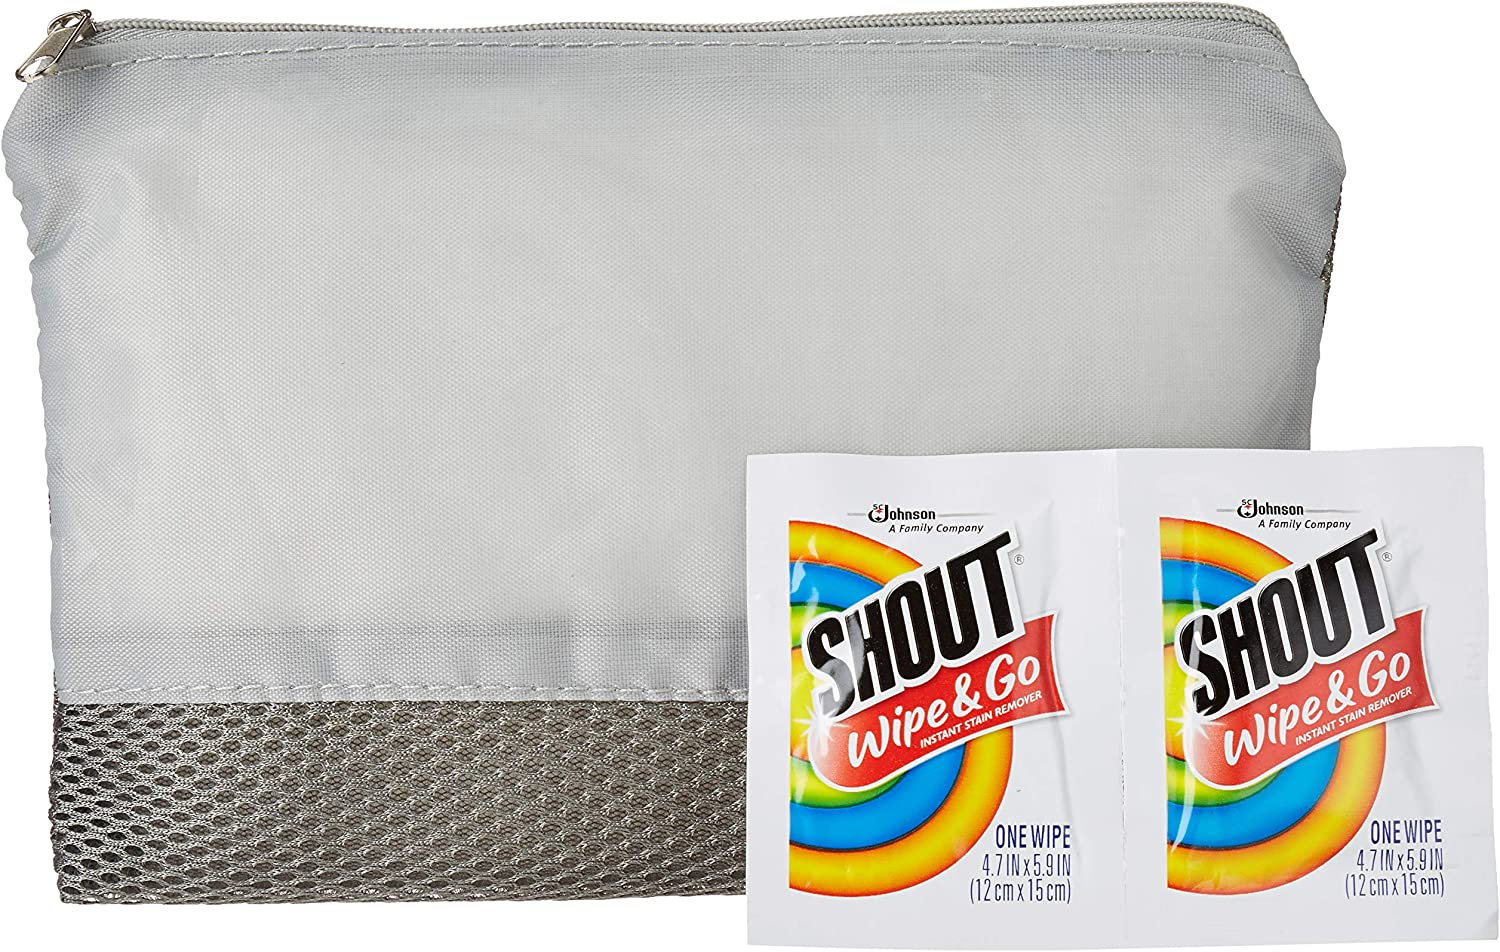 SC Johnson Professional Shout Wipes Instant Stain Remover Portable Packets + EverydayEssentials Reusable Travel Pouch Bundle - Advanced Stain Remover For Clothes, Car, Laundry, Leather & Carpet